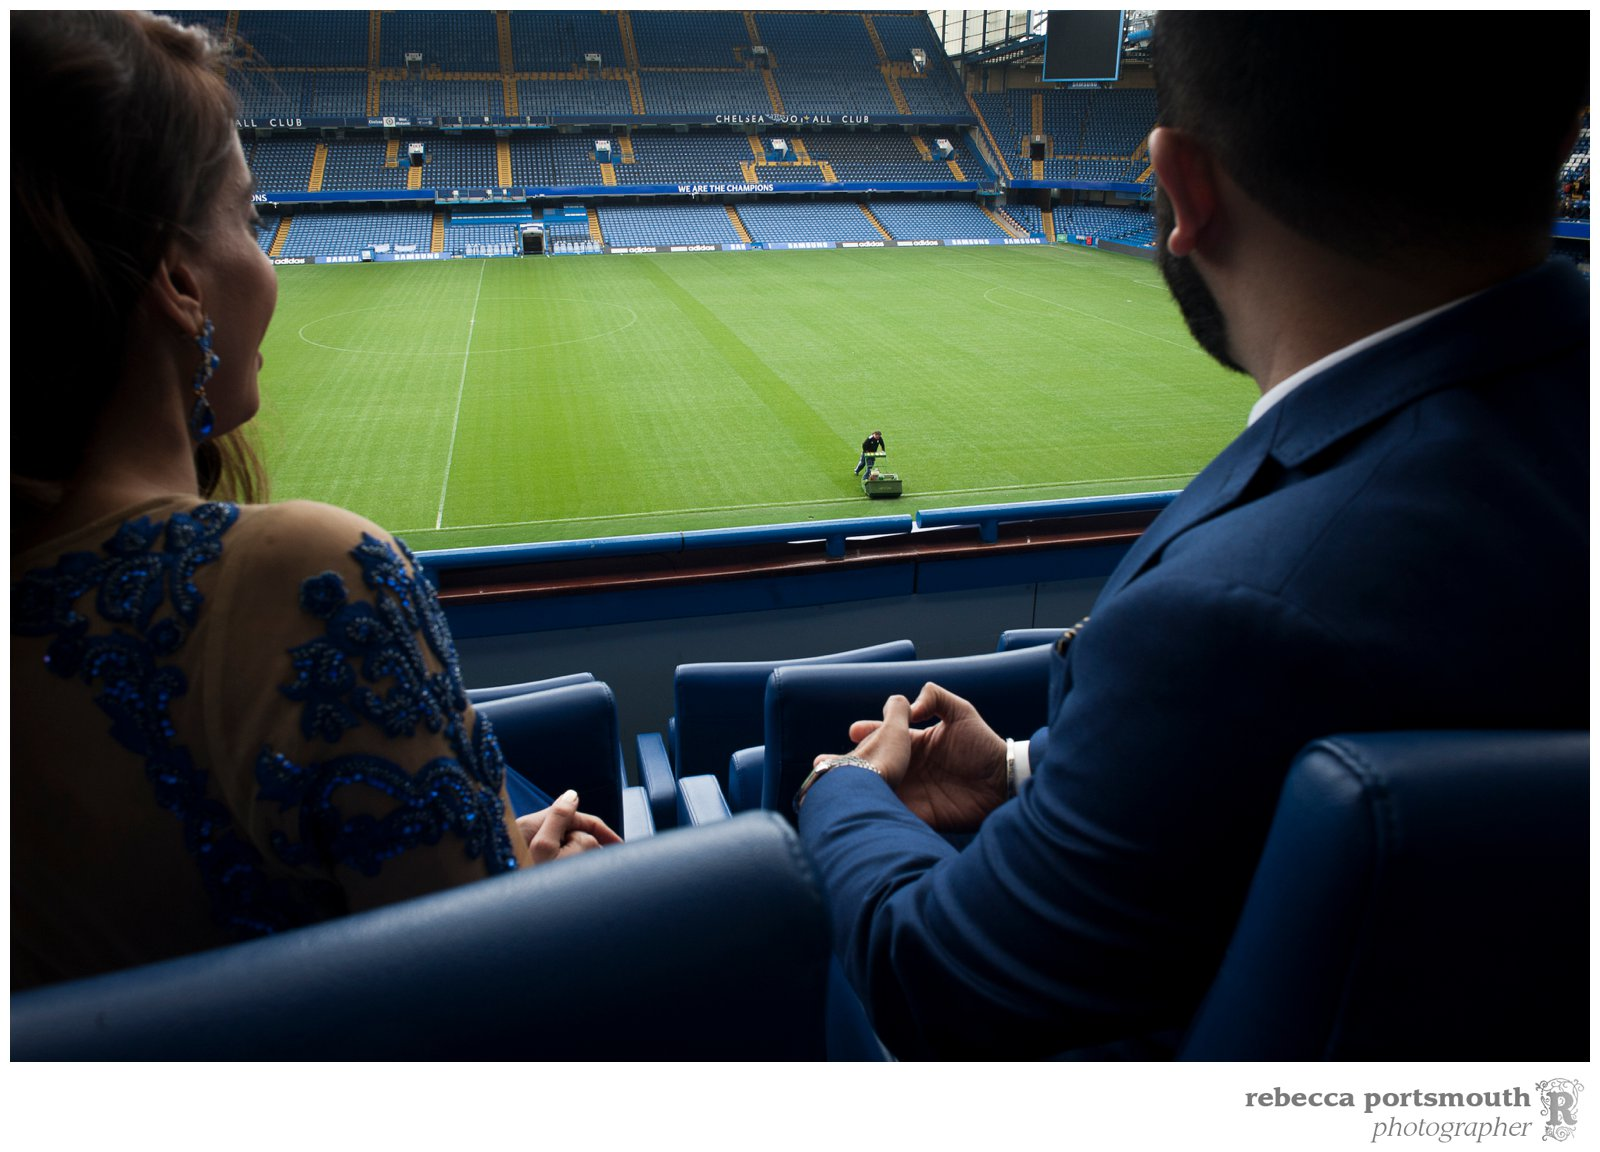 The bride and groom sit in the stands while groundsmen work on the Chelsea Football Club pitch, ready for a game in two days.